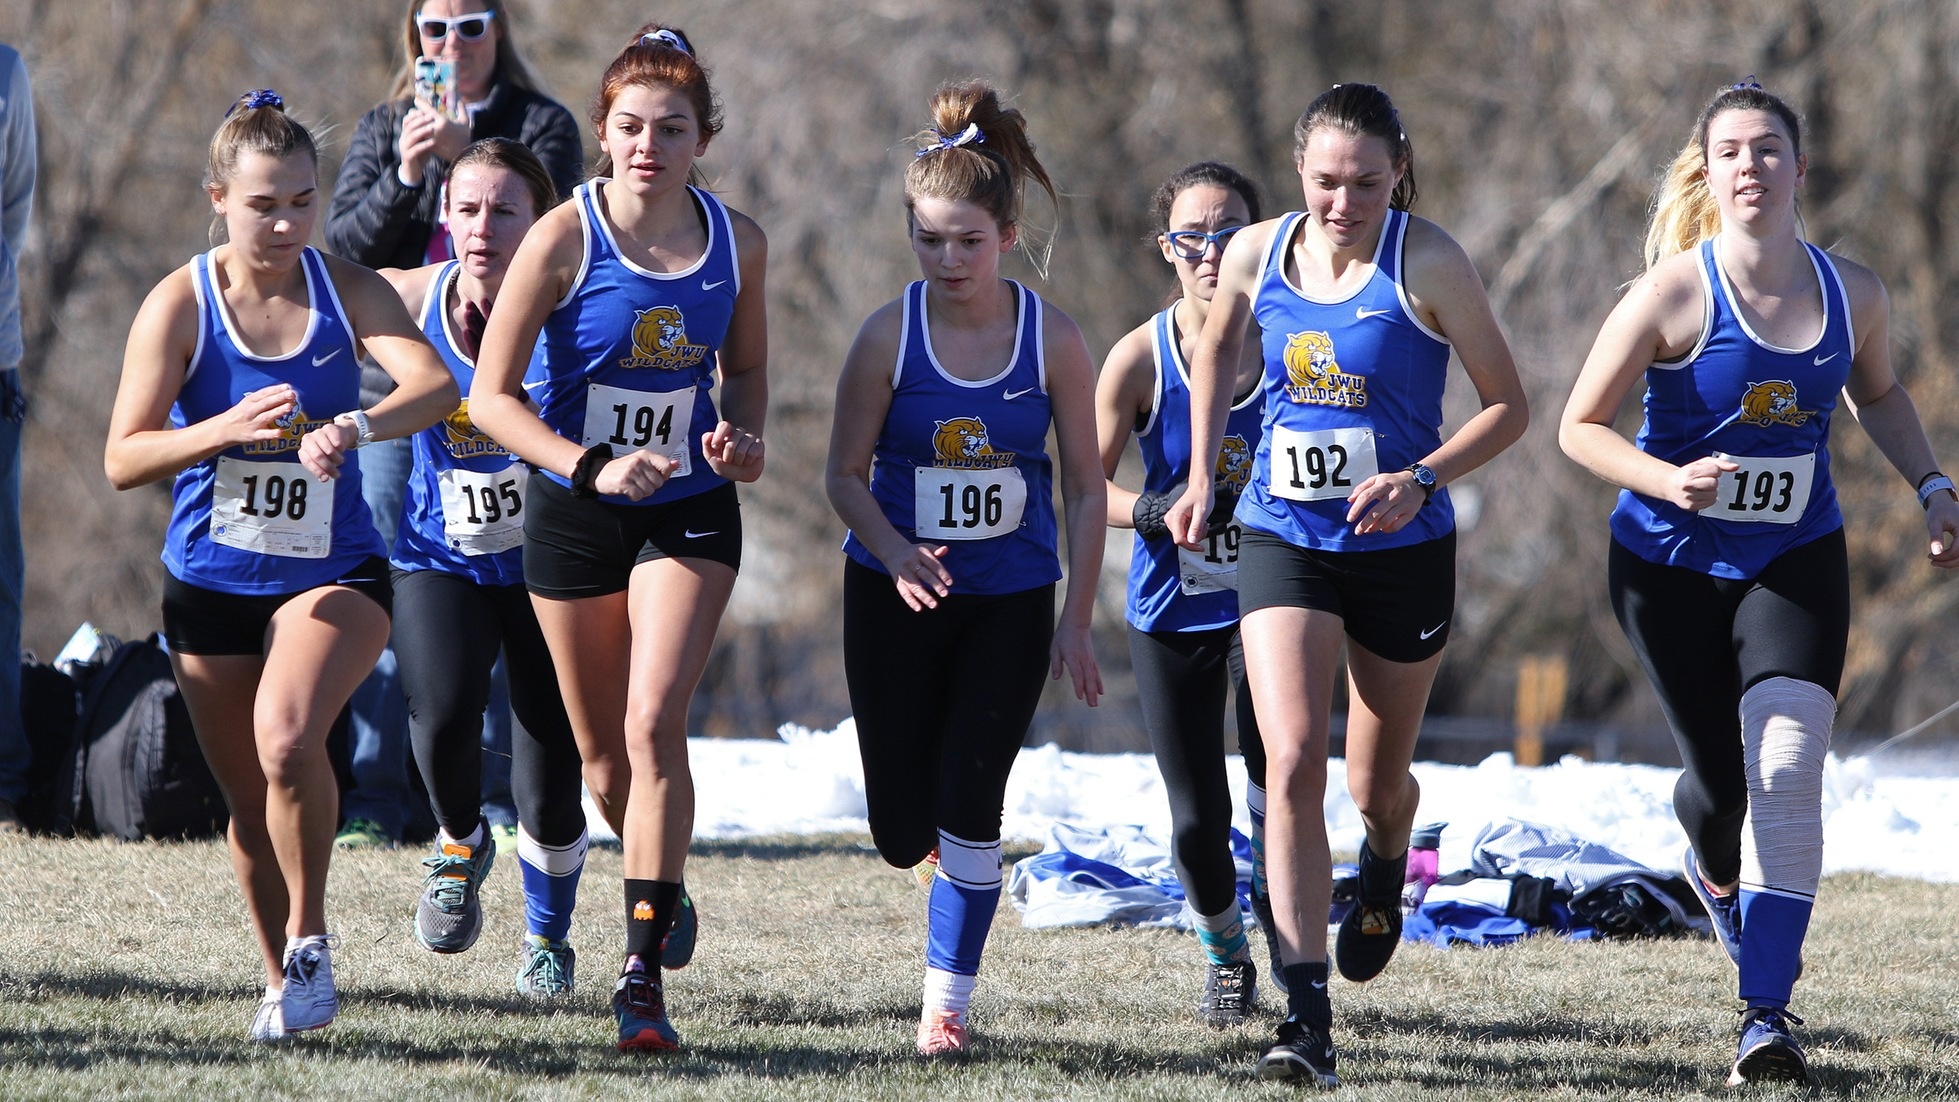 Seligson leads 7 Wildcats at SCAC Championships